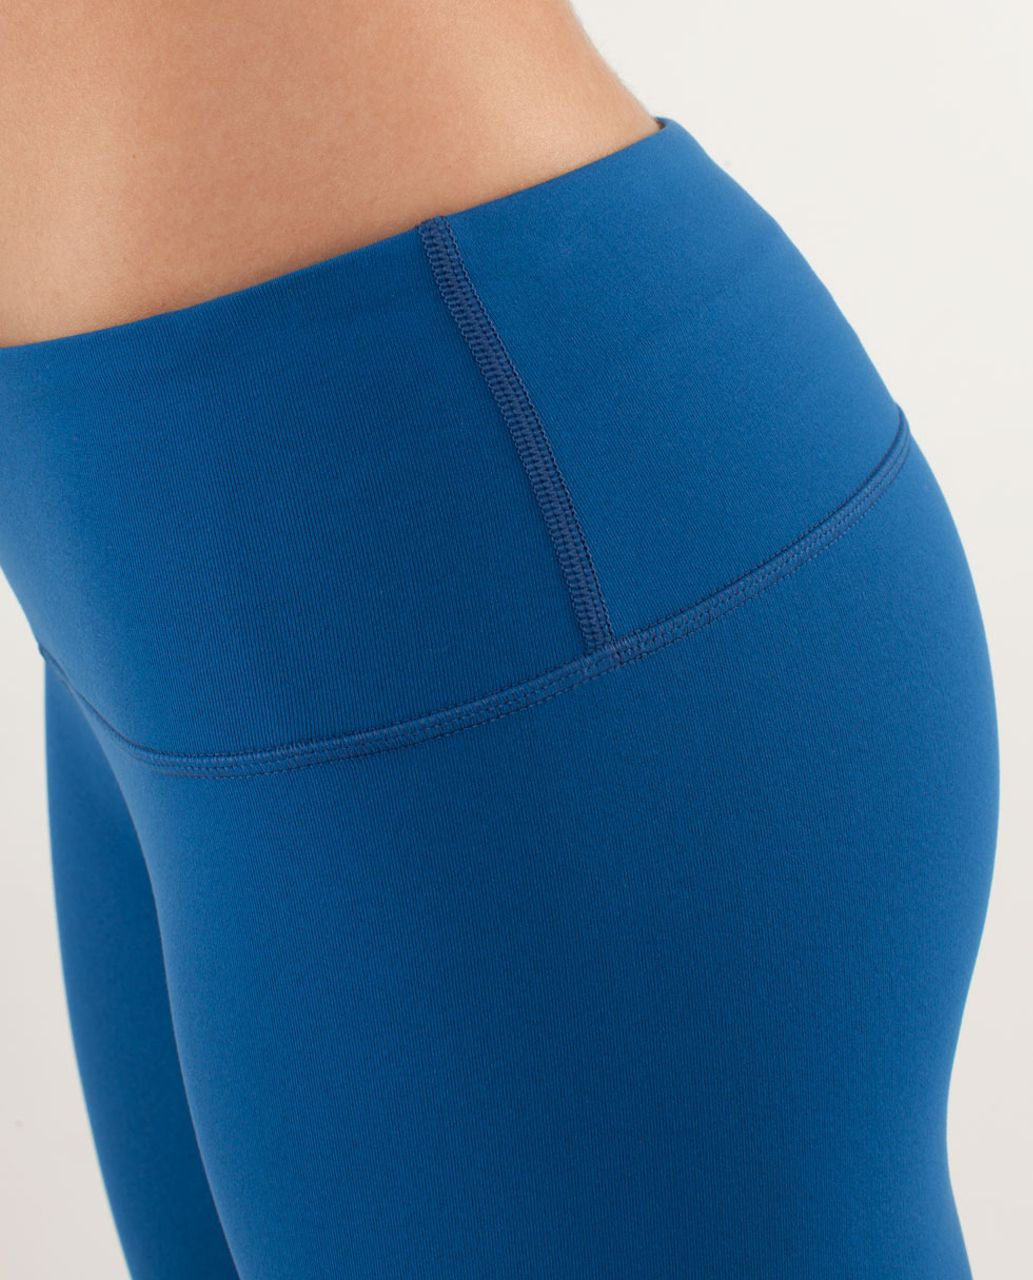 Lululemon Wunder Under Pant *Reversible - Limitless Blue / Black